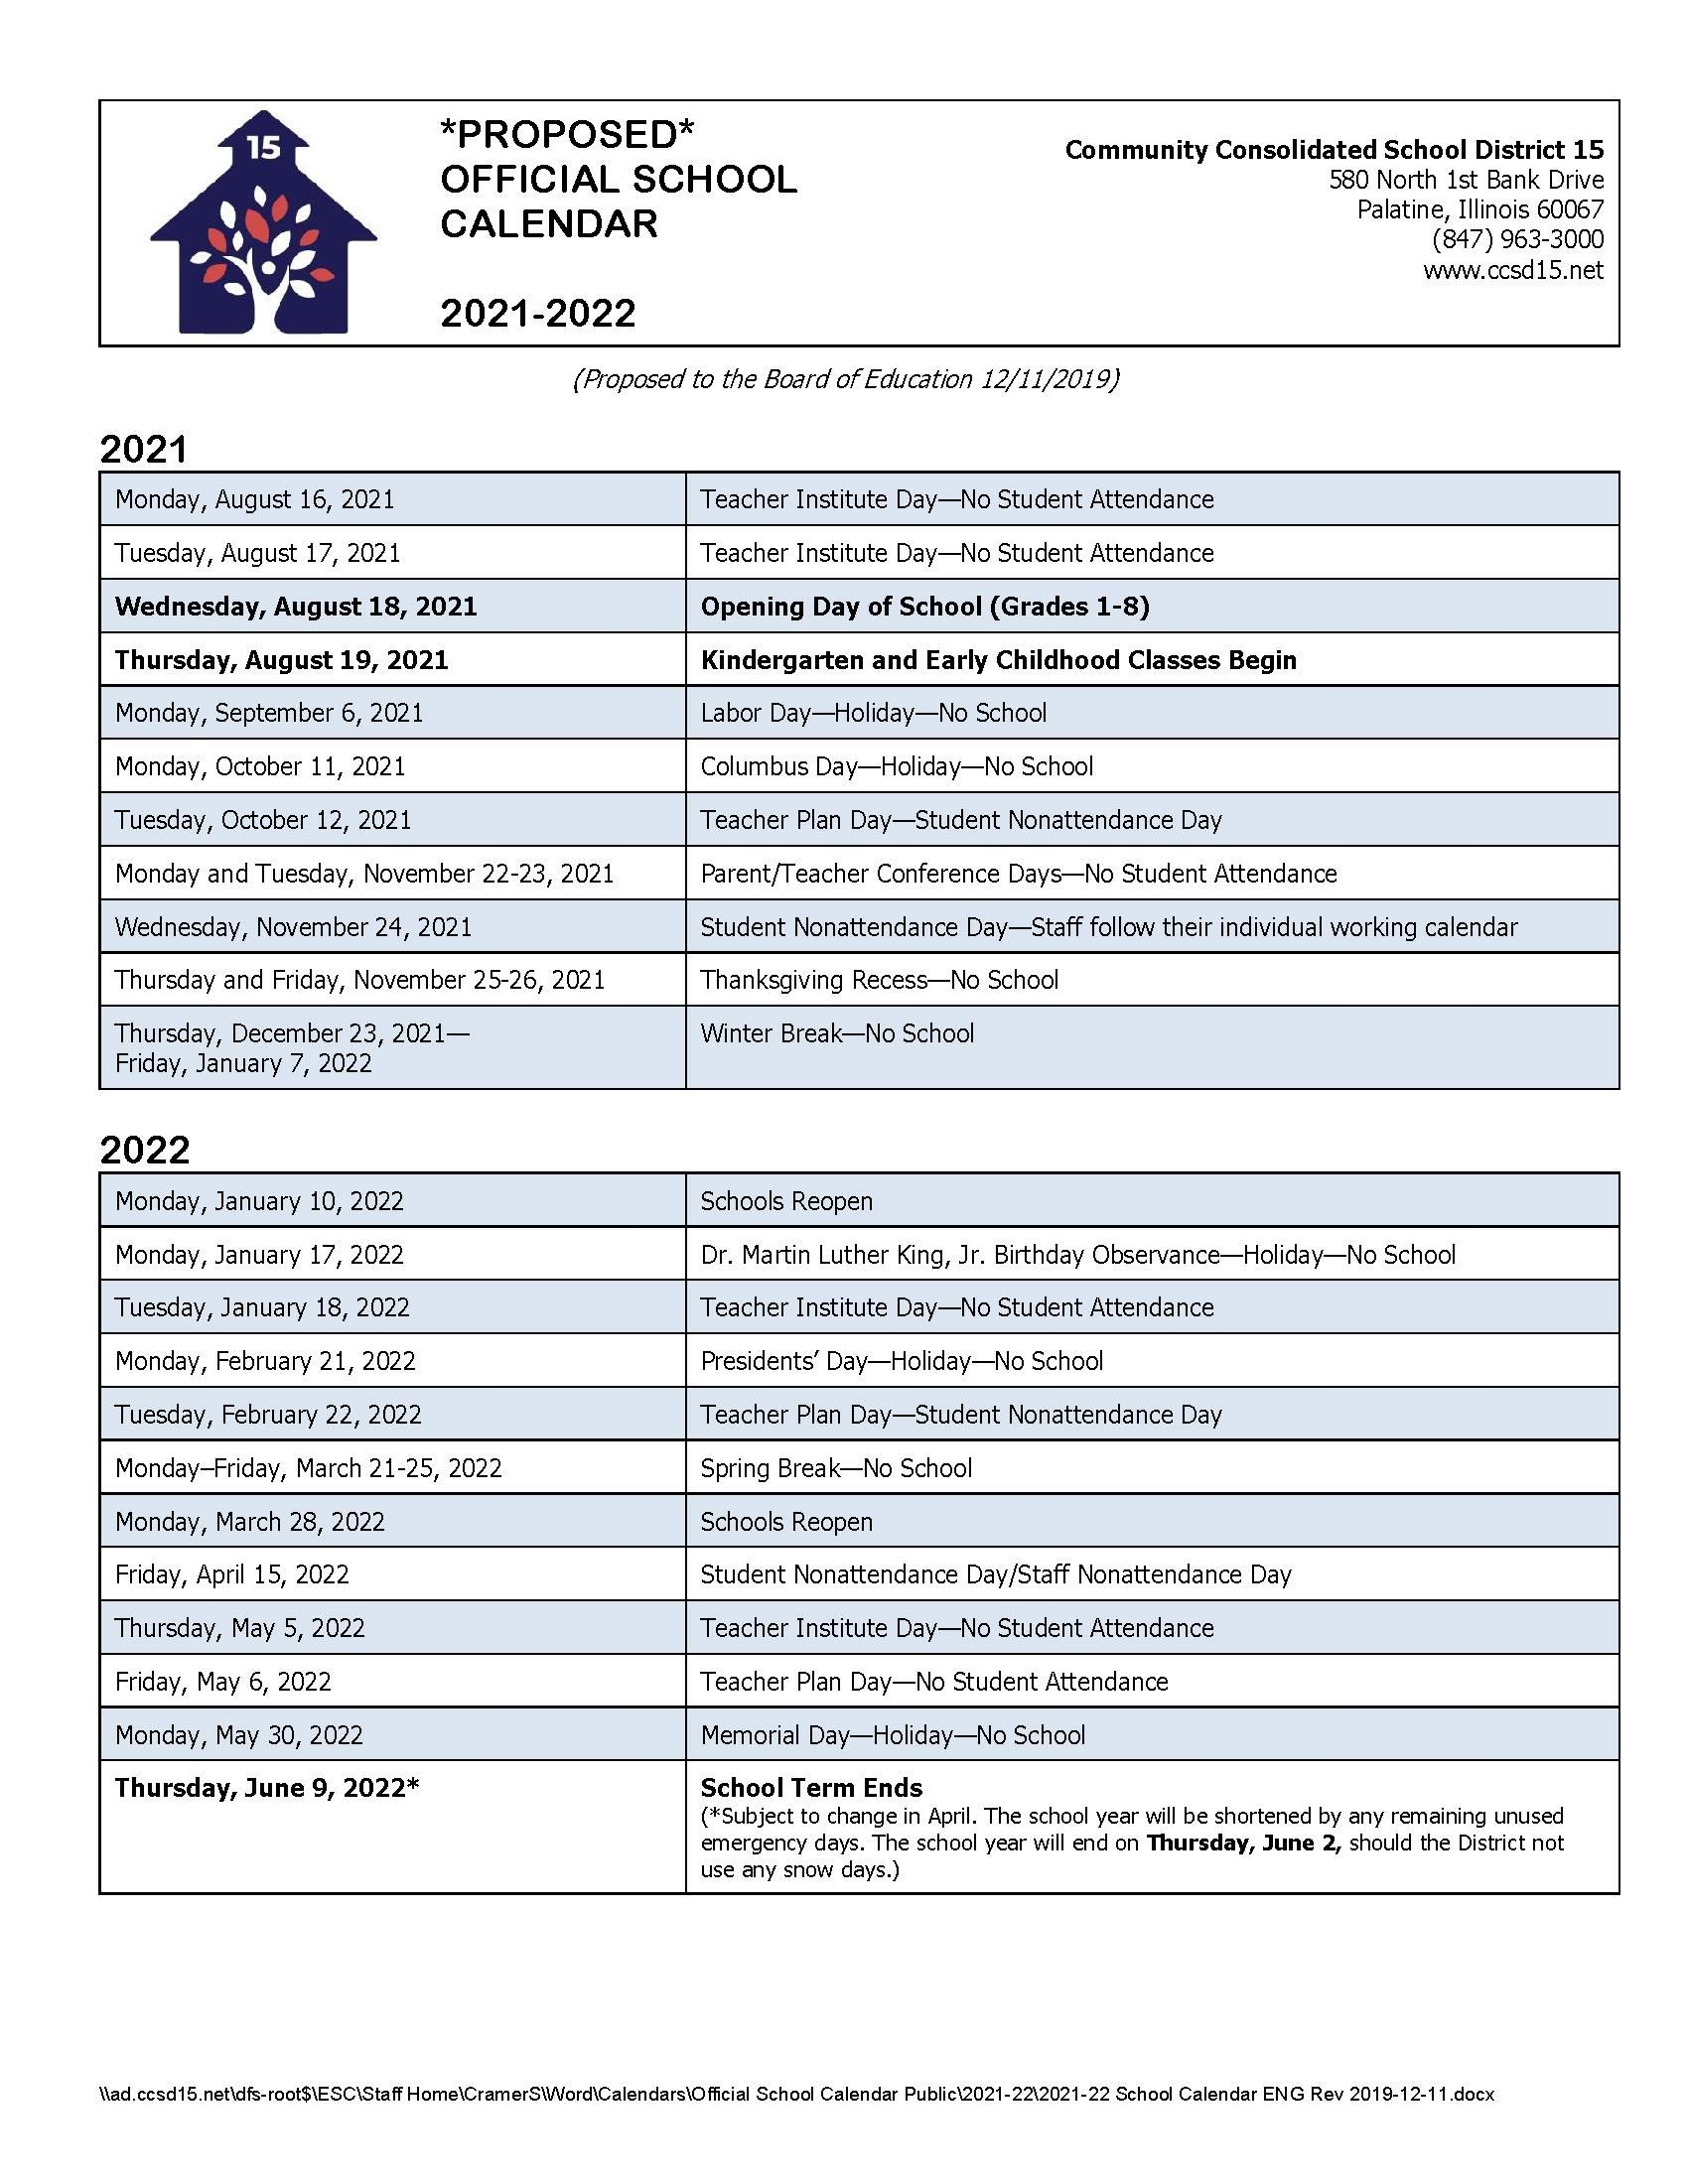 Hawaii Doe 2021-22 Calendar Calendars / 2021 22 *Proposed* Official School Calendar